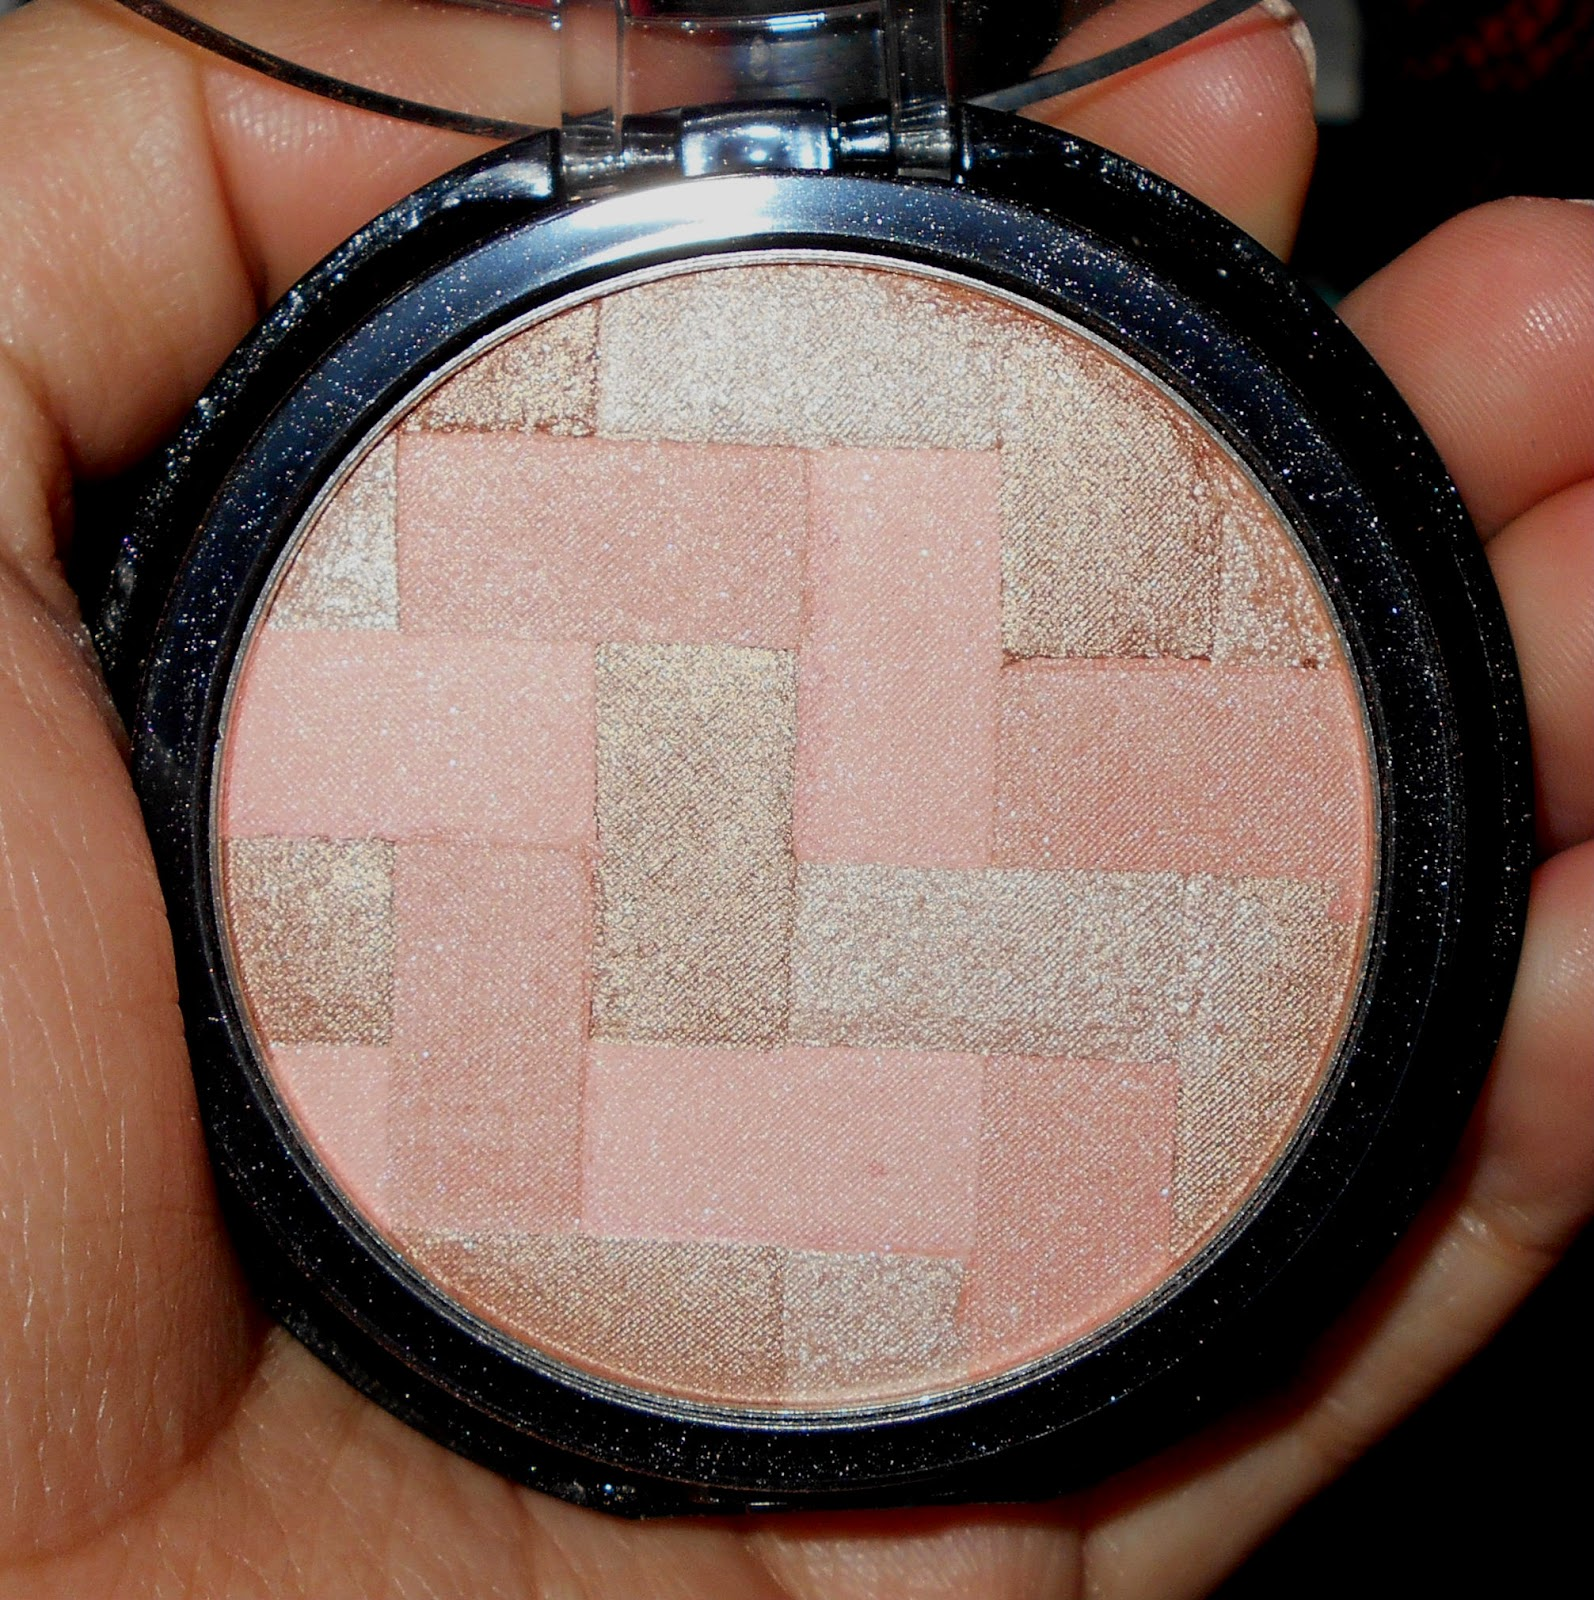 Maybelline Master Hi-Light Blushes in Nude